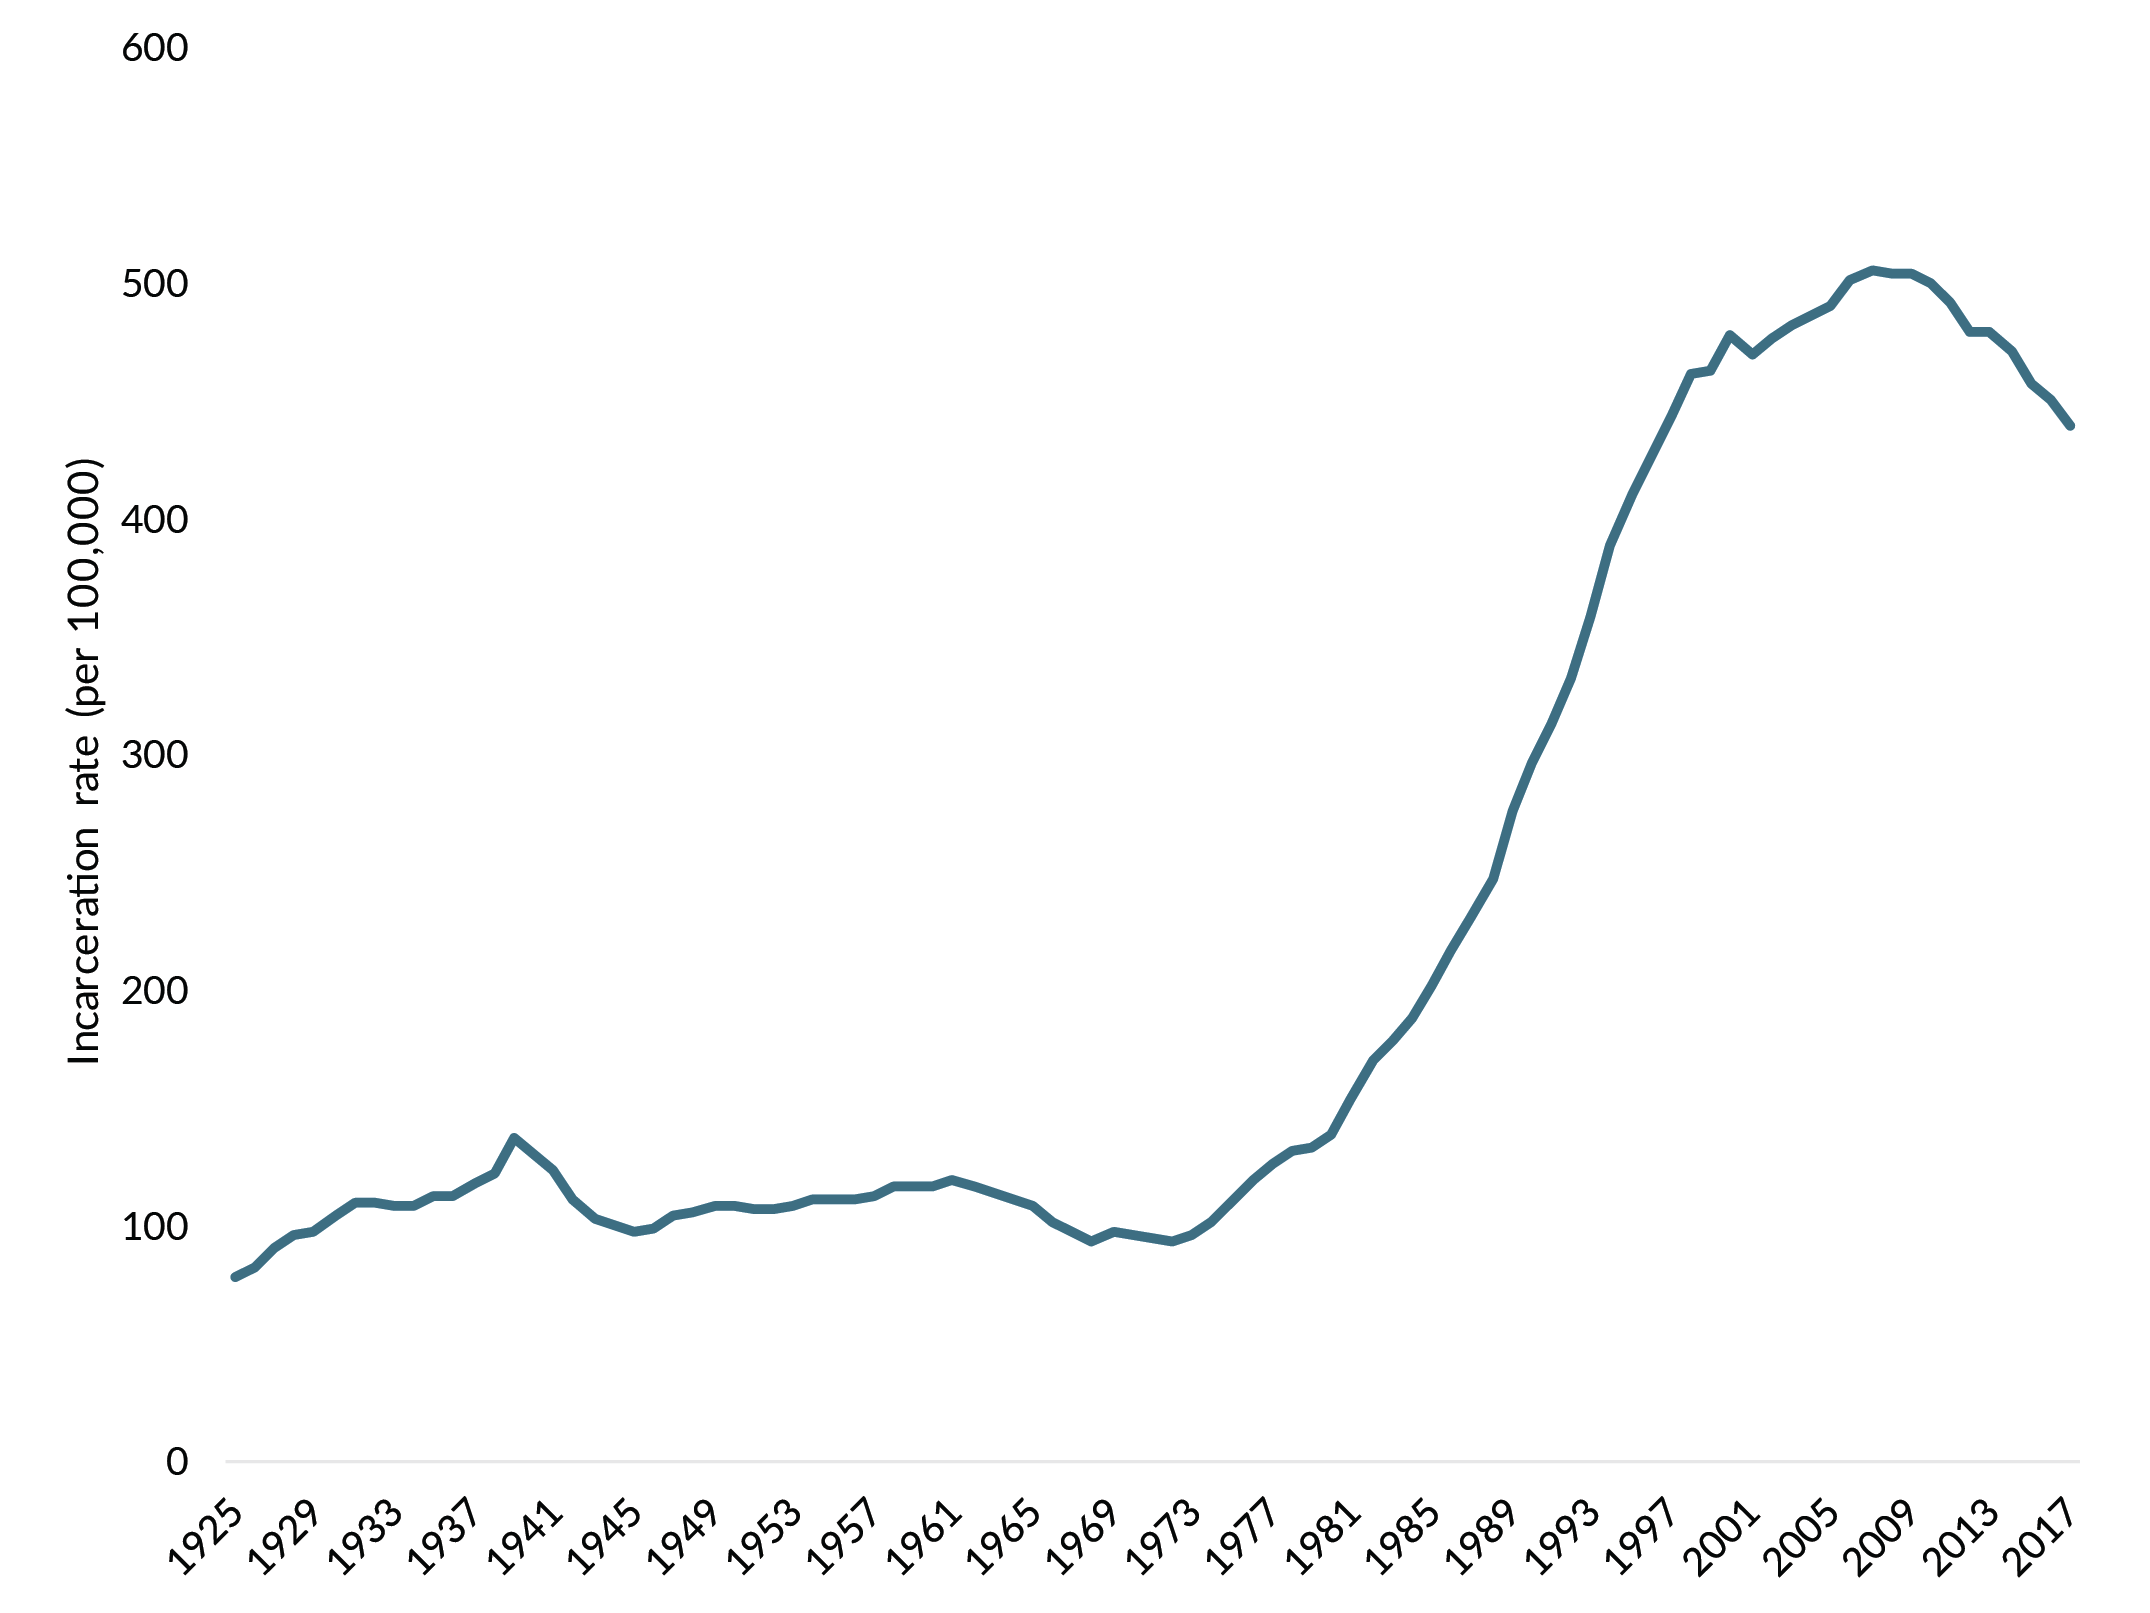 The U.S. incarceration rate has declined in recent years, but it remains among the highest in the world.